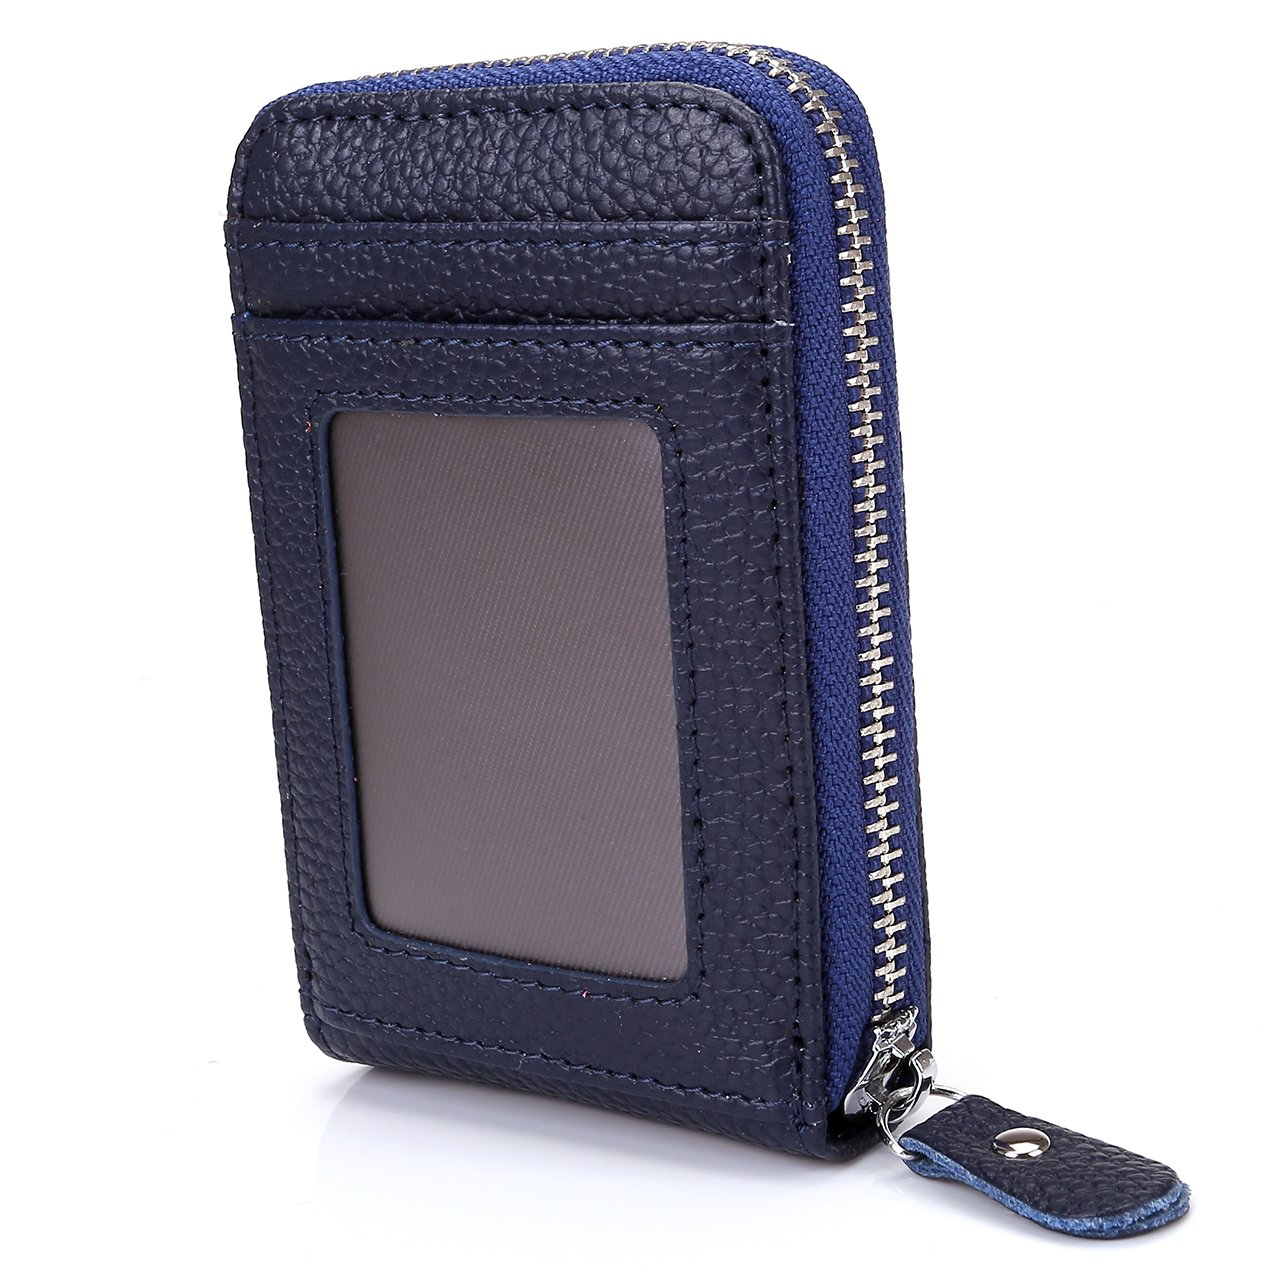 Faleto Accordion Style Leather Mini Credit Card Case Organizer Wallet With Zipper Pocket (Dark Blue)